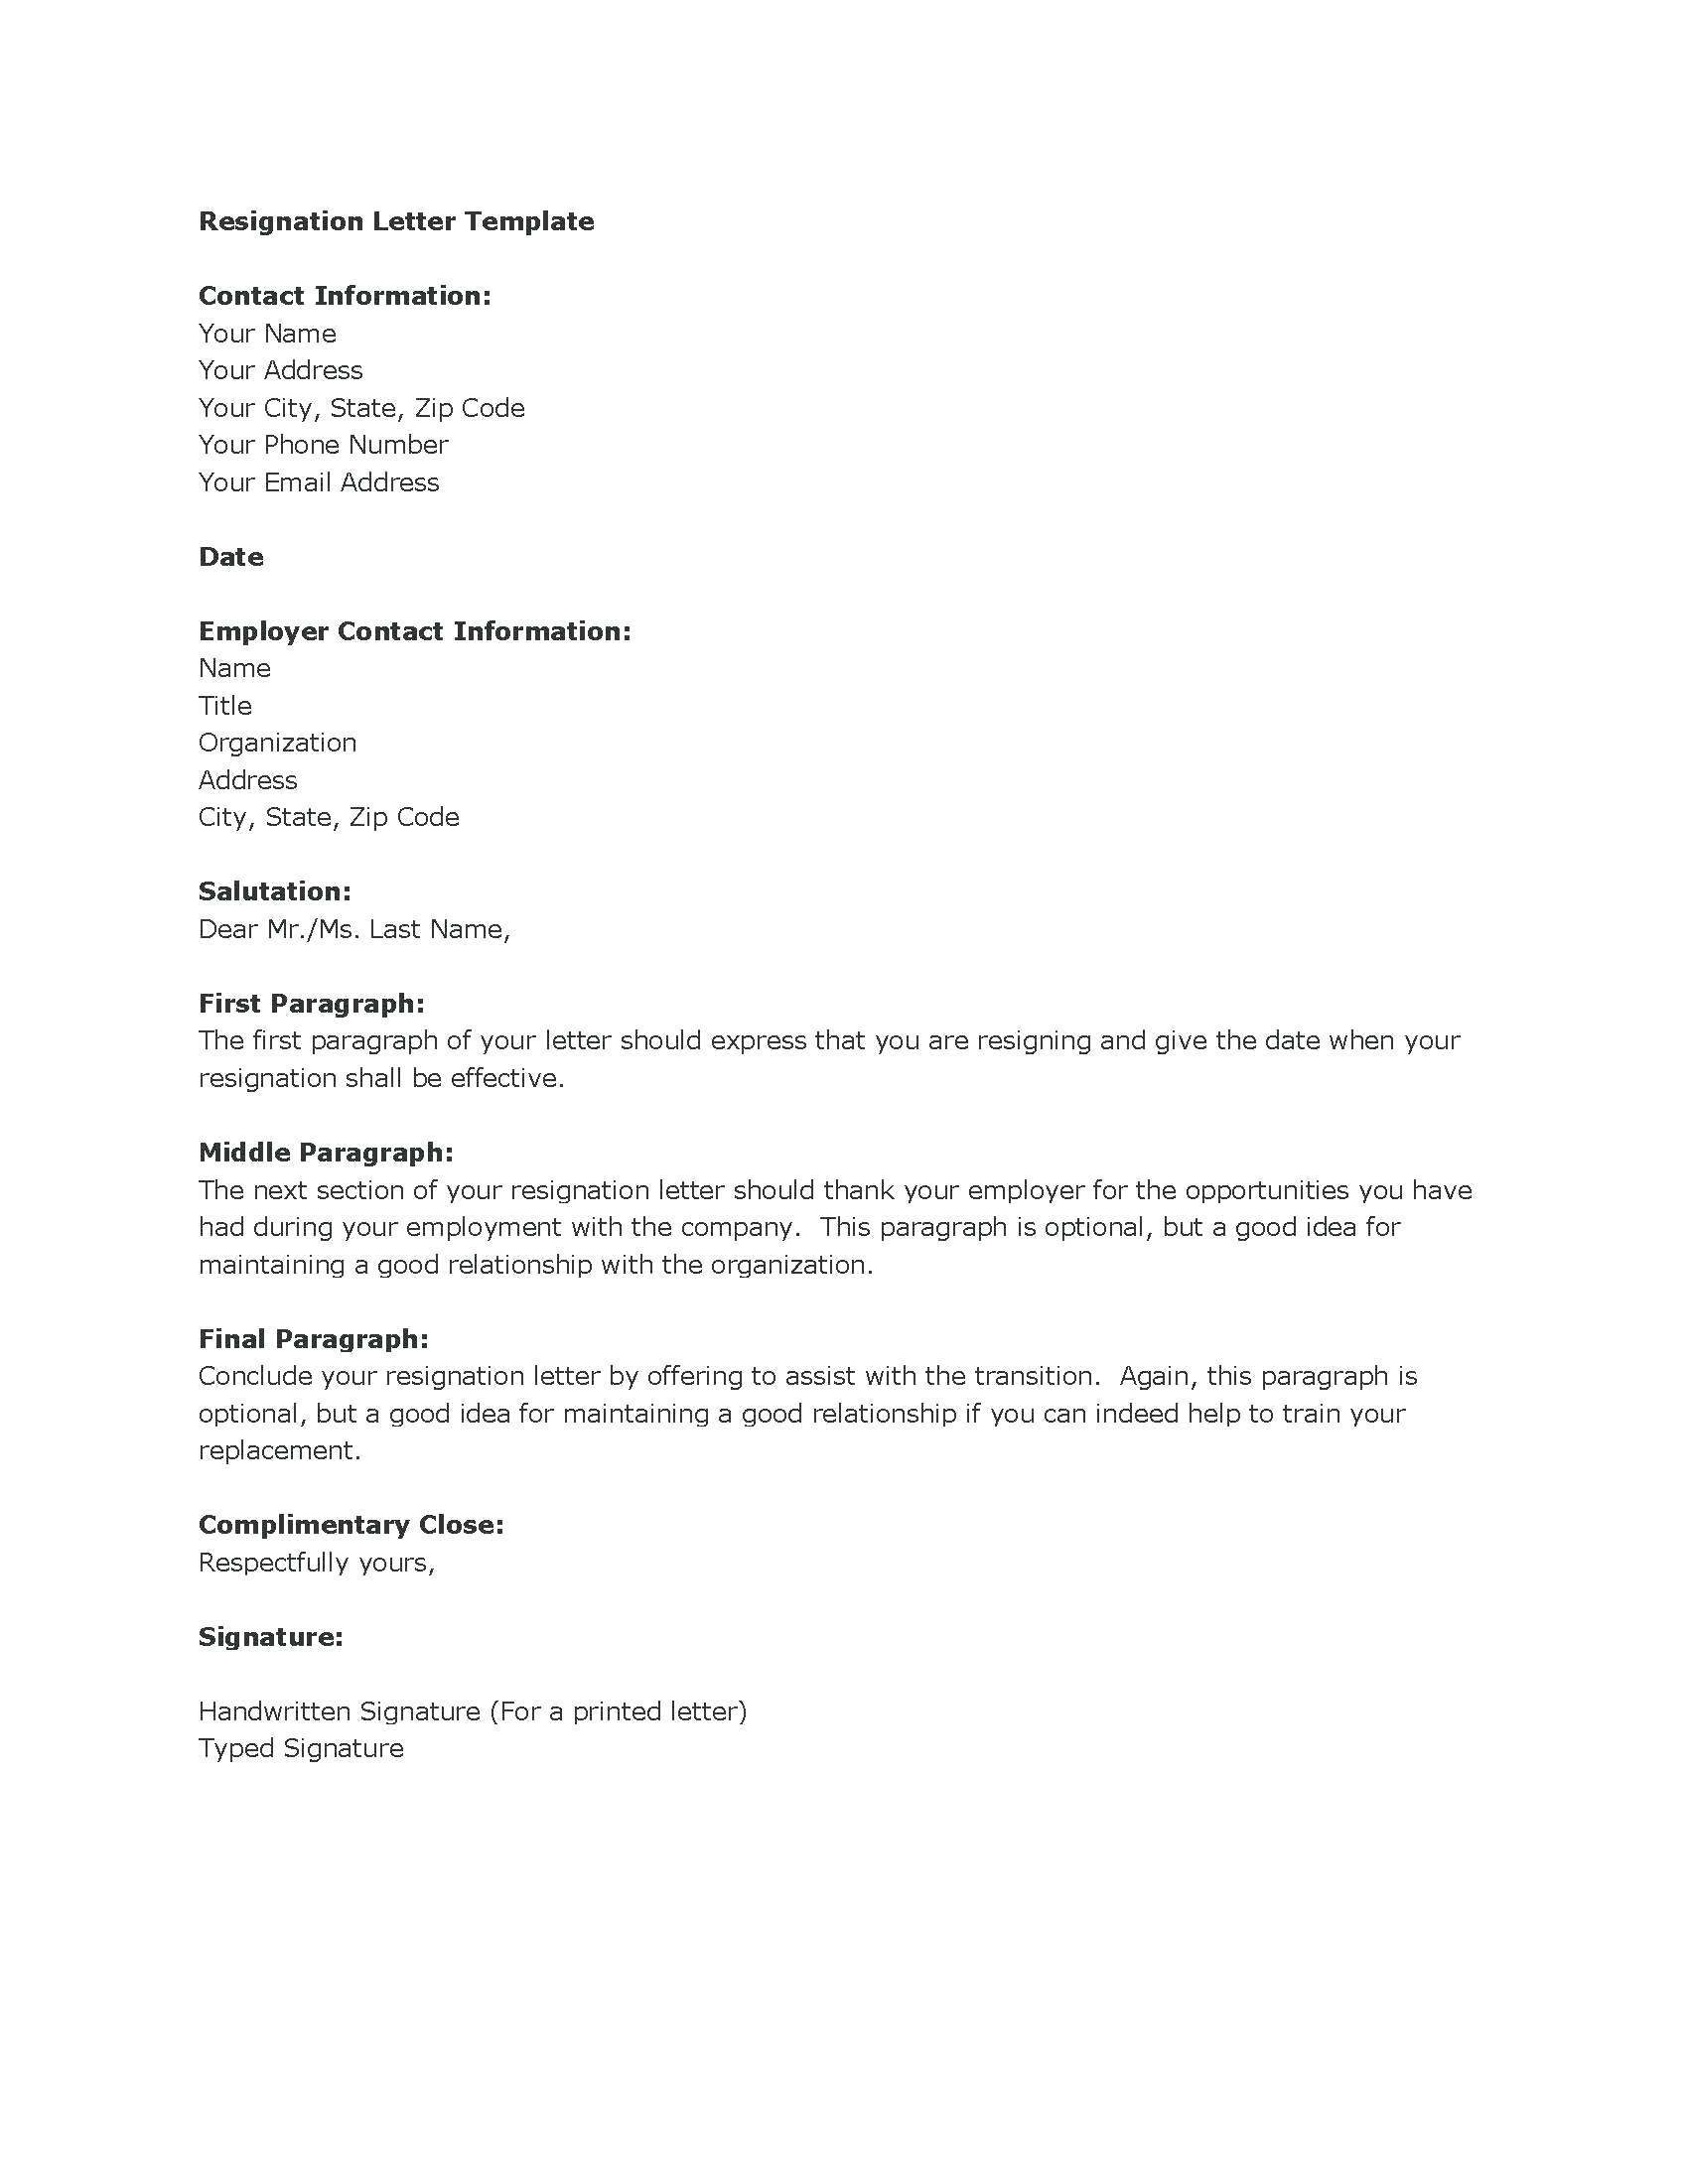 Microsoft Word Resignation Letter Template   Resignation Letter In Ms Word  Sarahepps